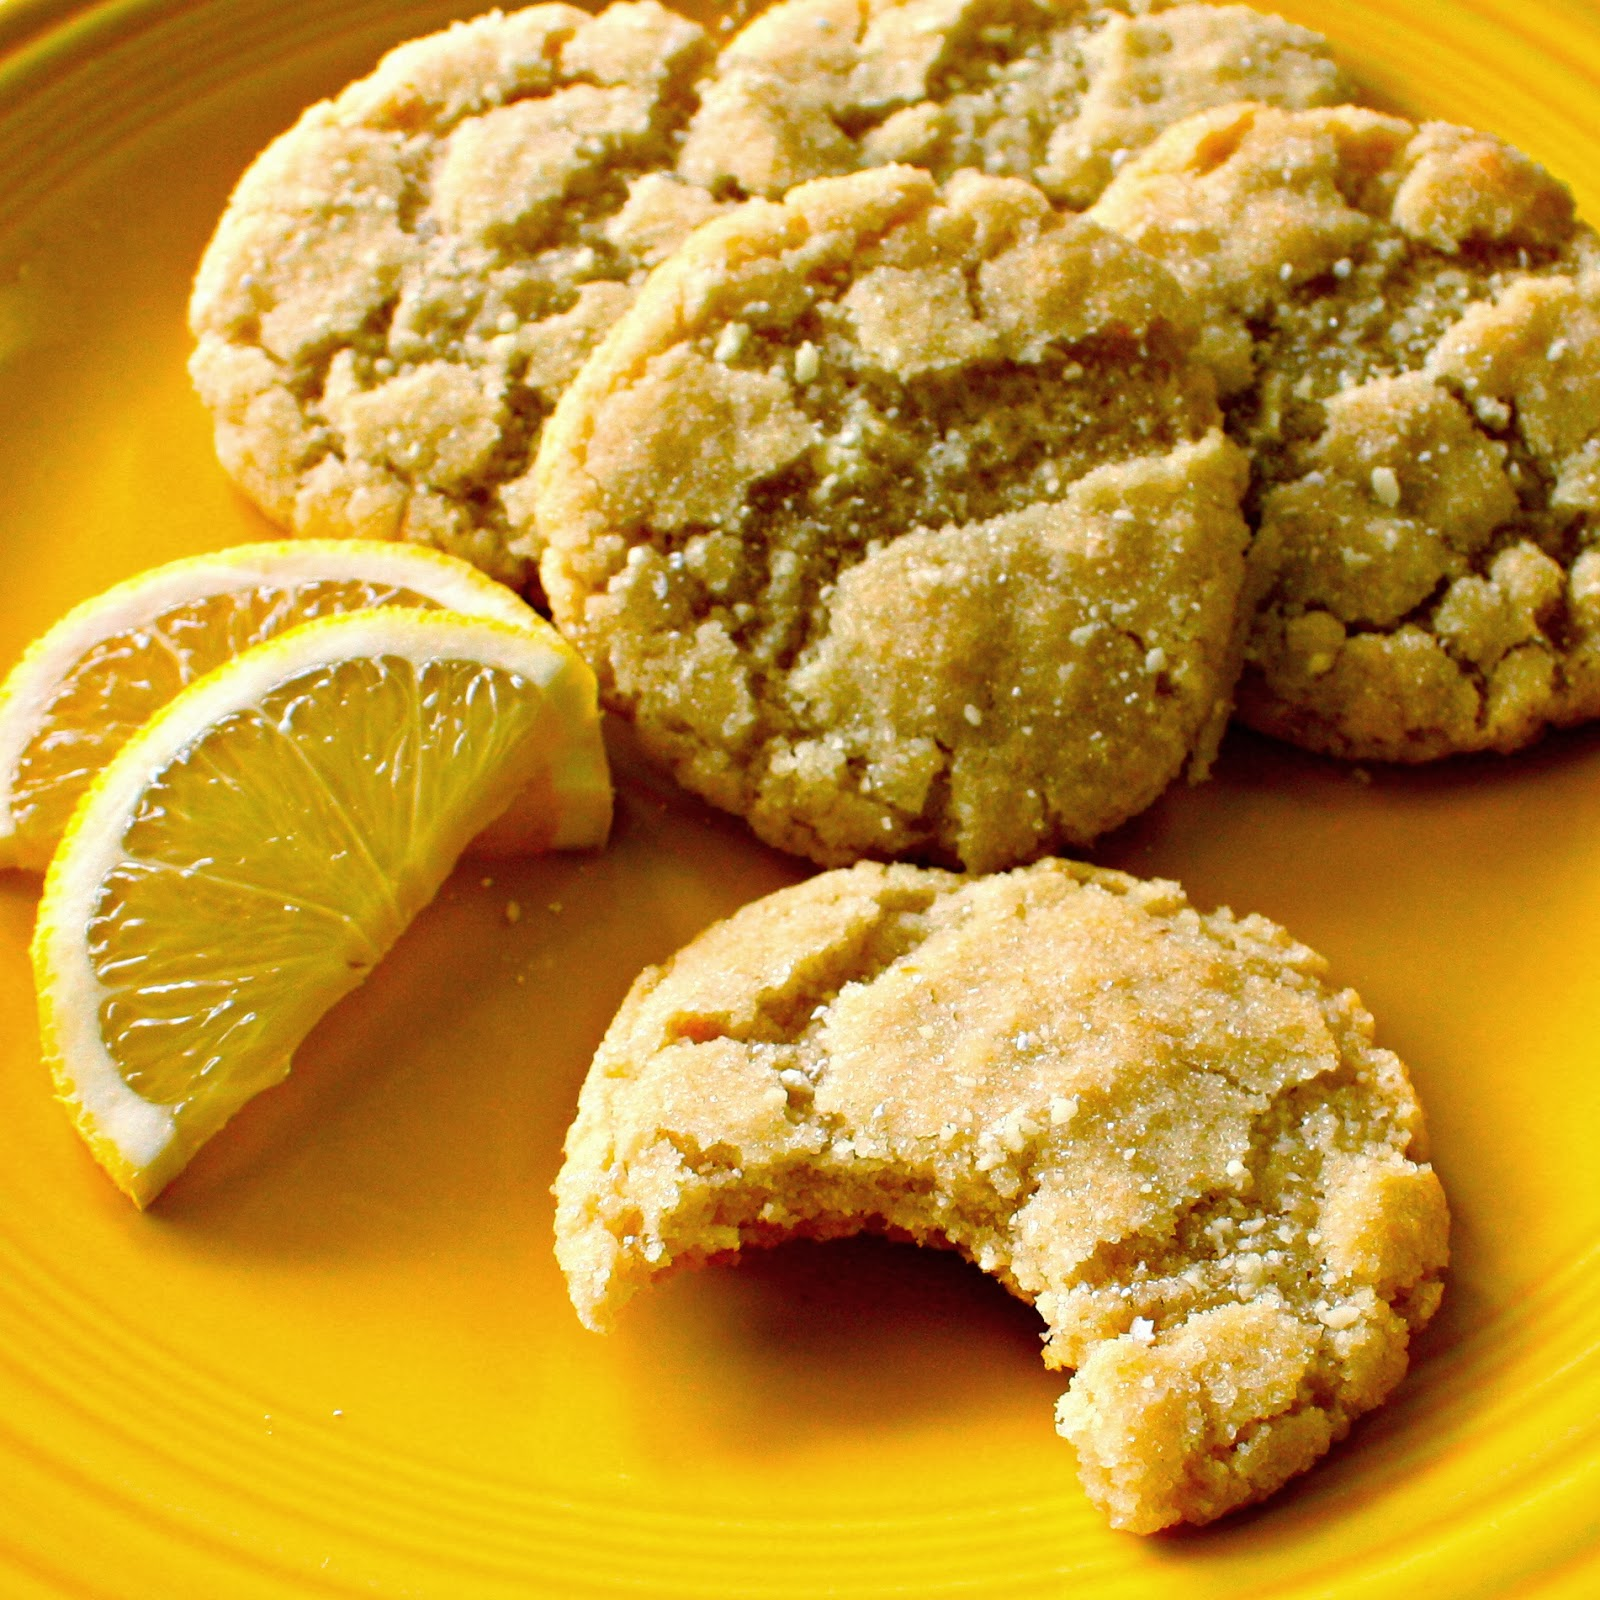 lemon-olive-oil-cookies-015.jpg